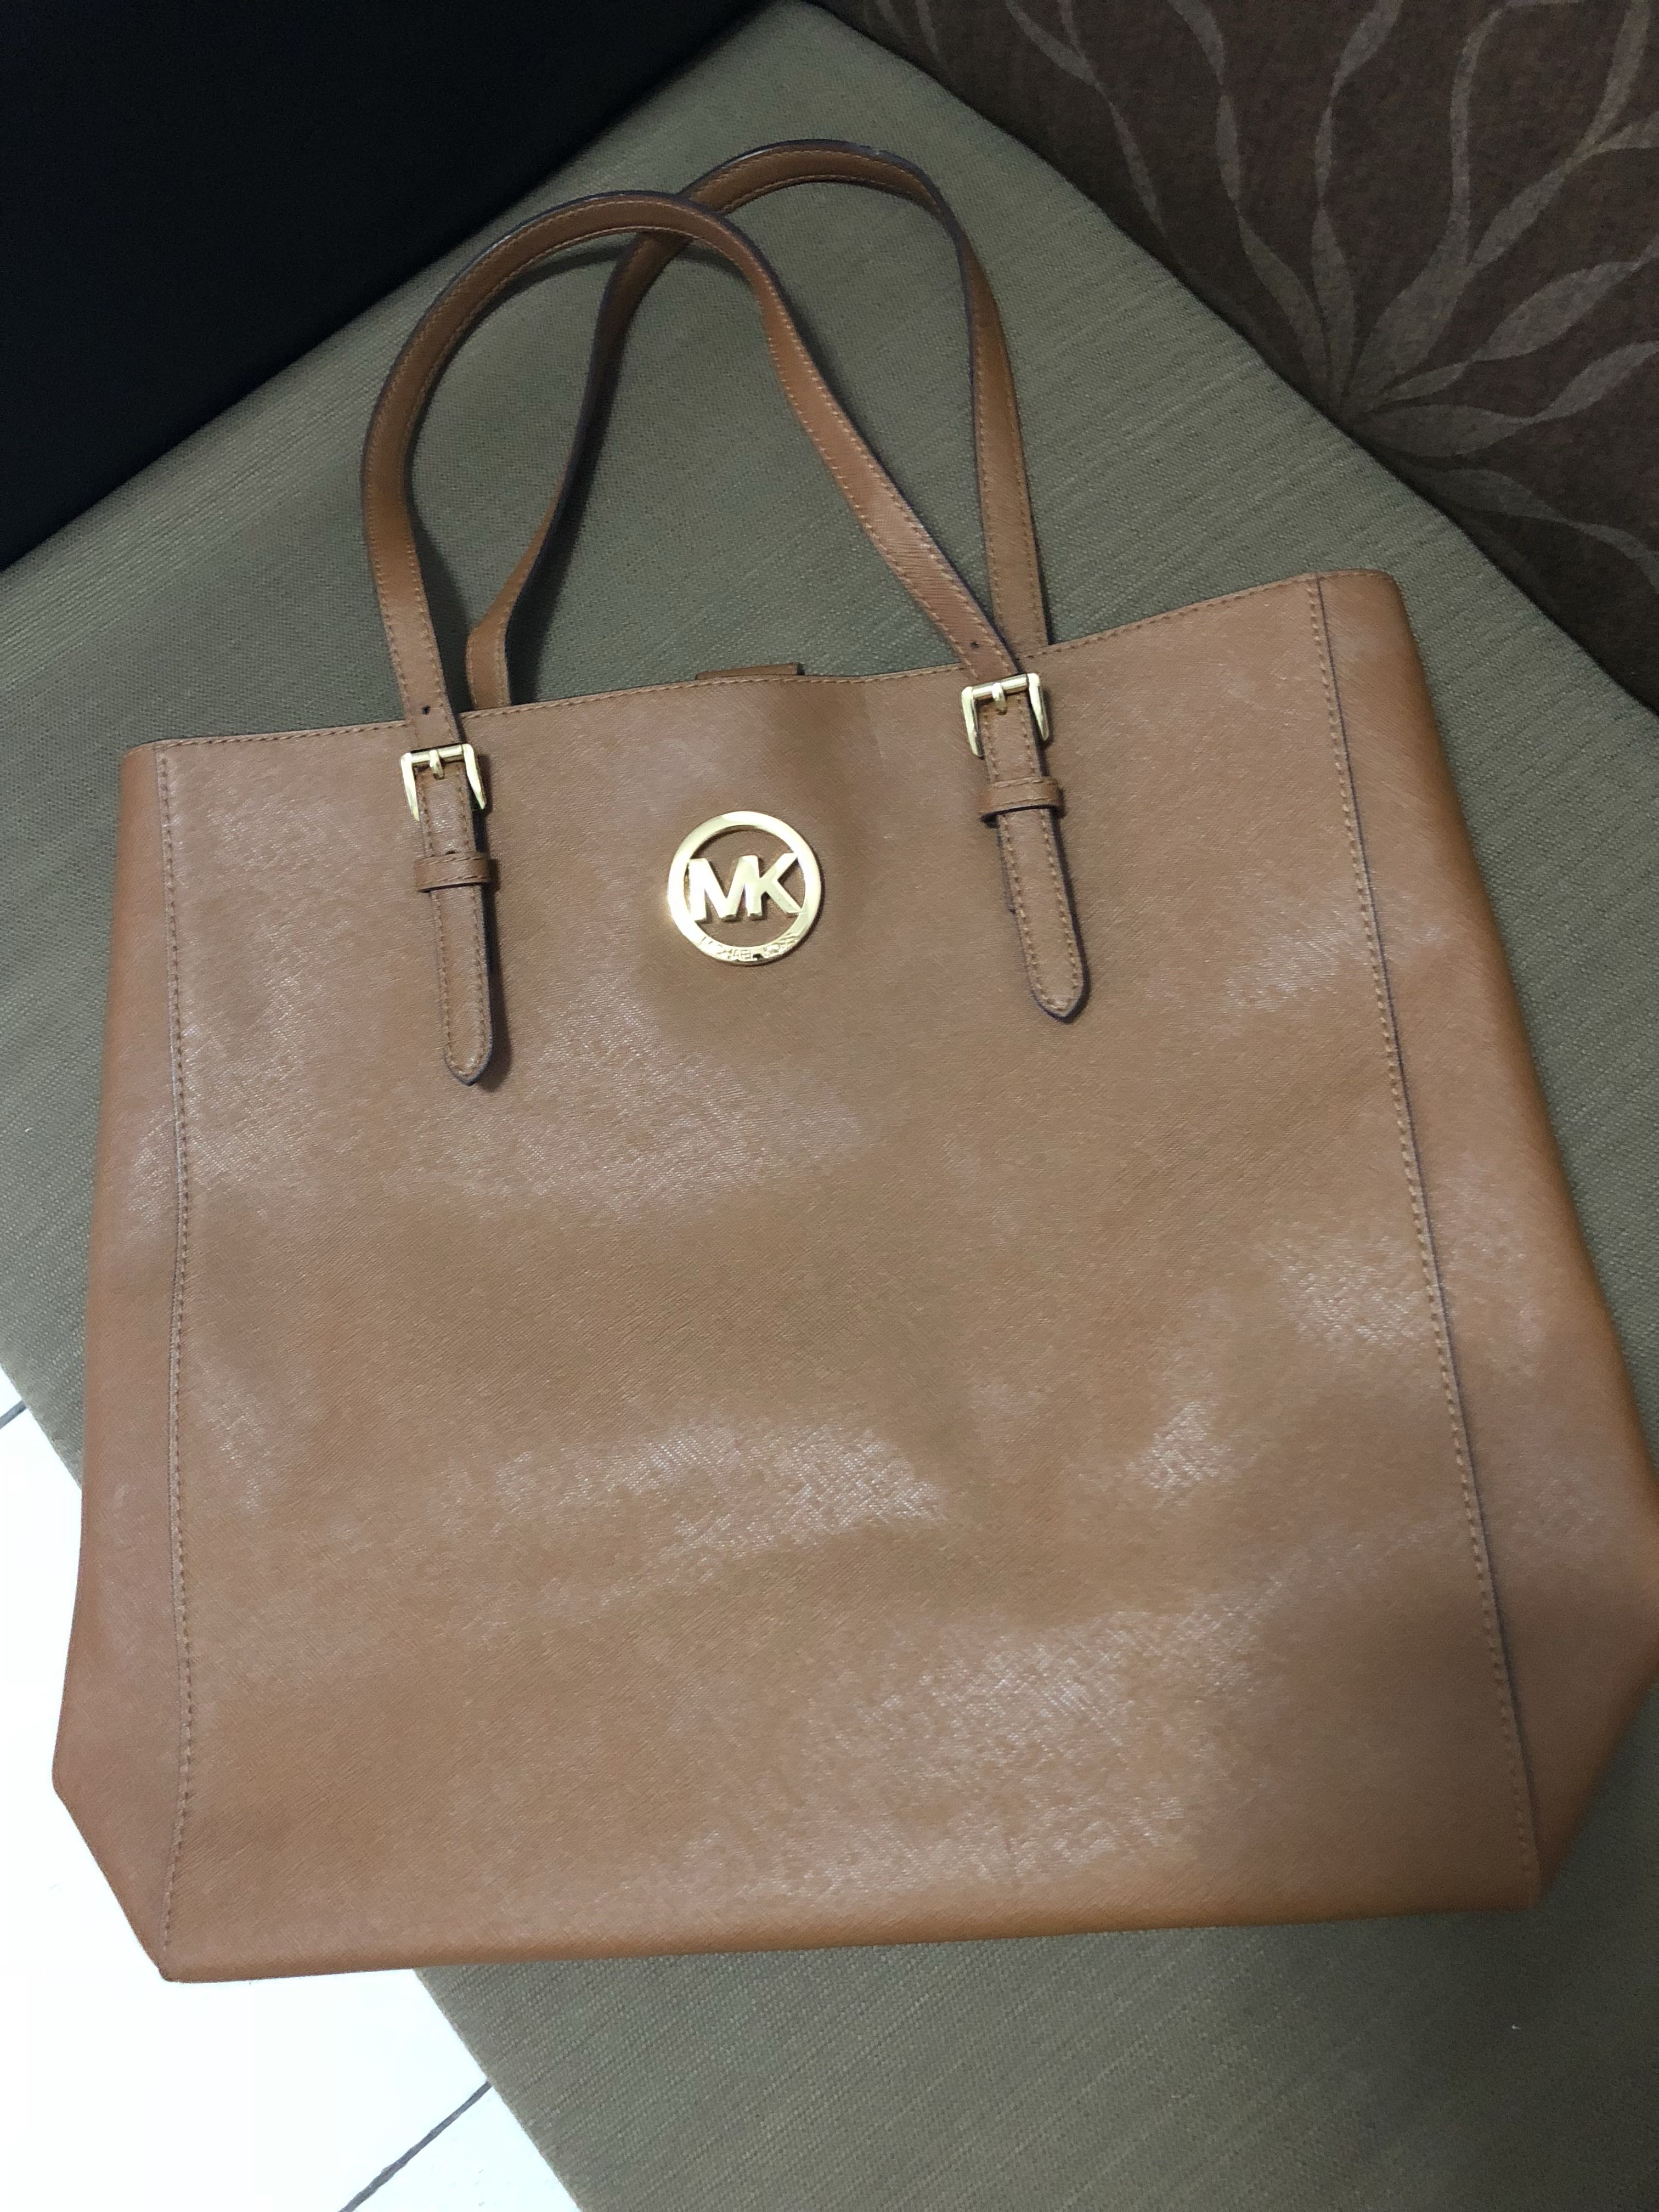 5a7aaa1dfb5b0d Authentic Pre Loved Michael Kors Bag, Luxury, Bags & Wallets on ...